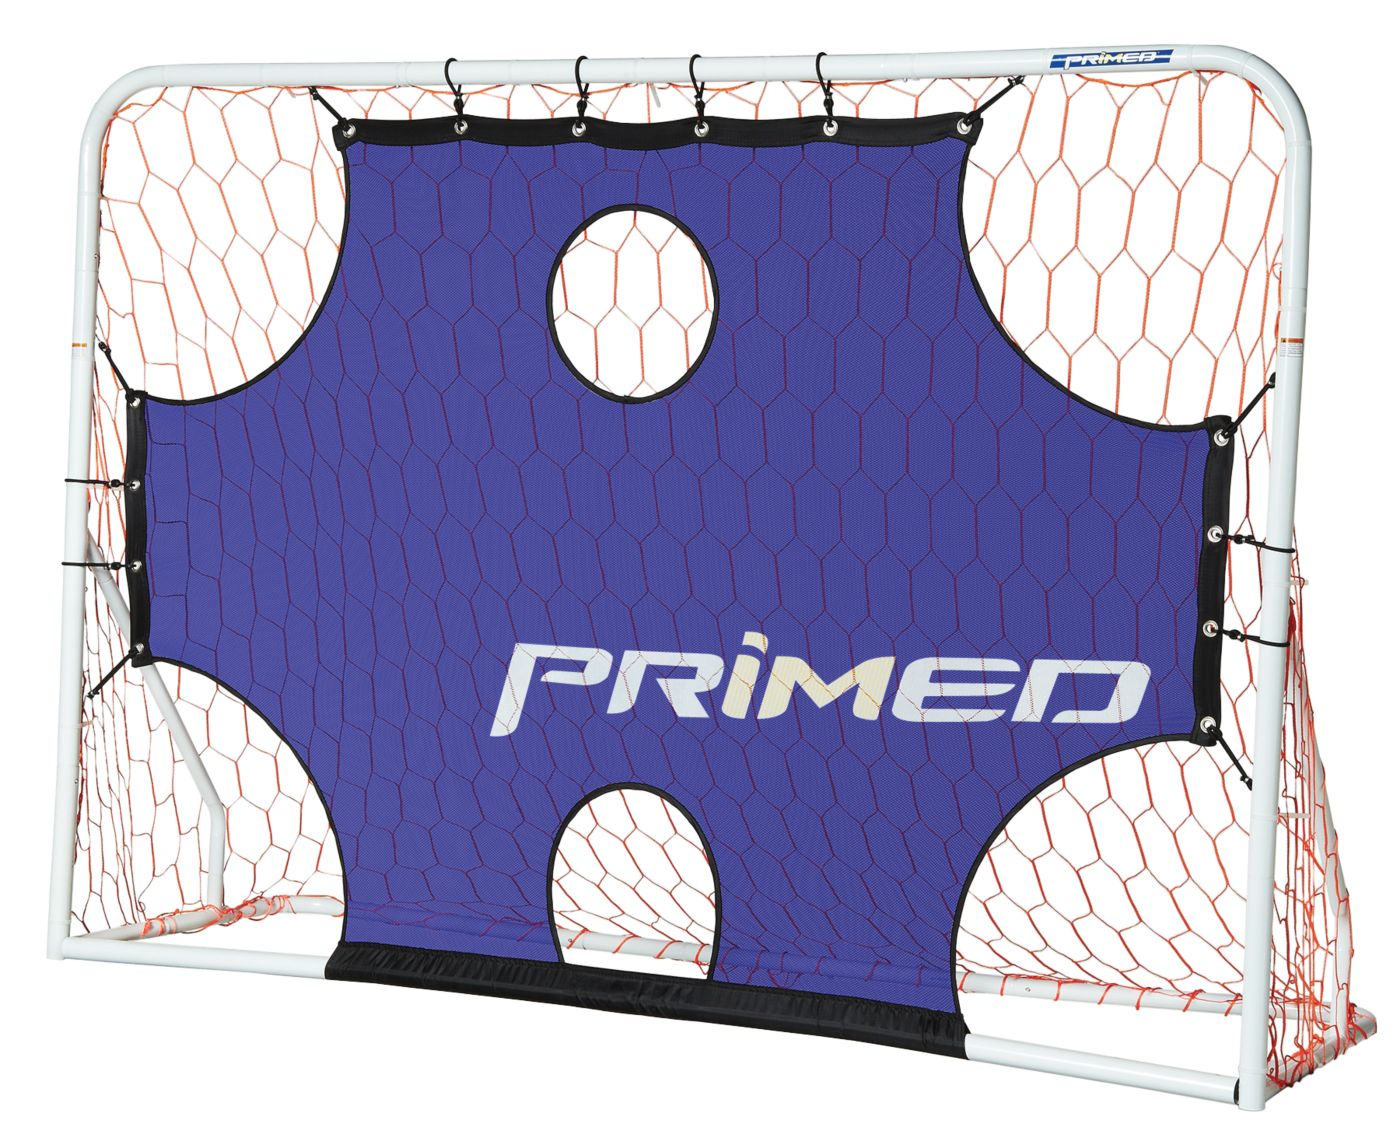 PRIMED 3-in-1 Soccer Trainer